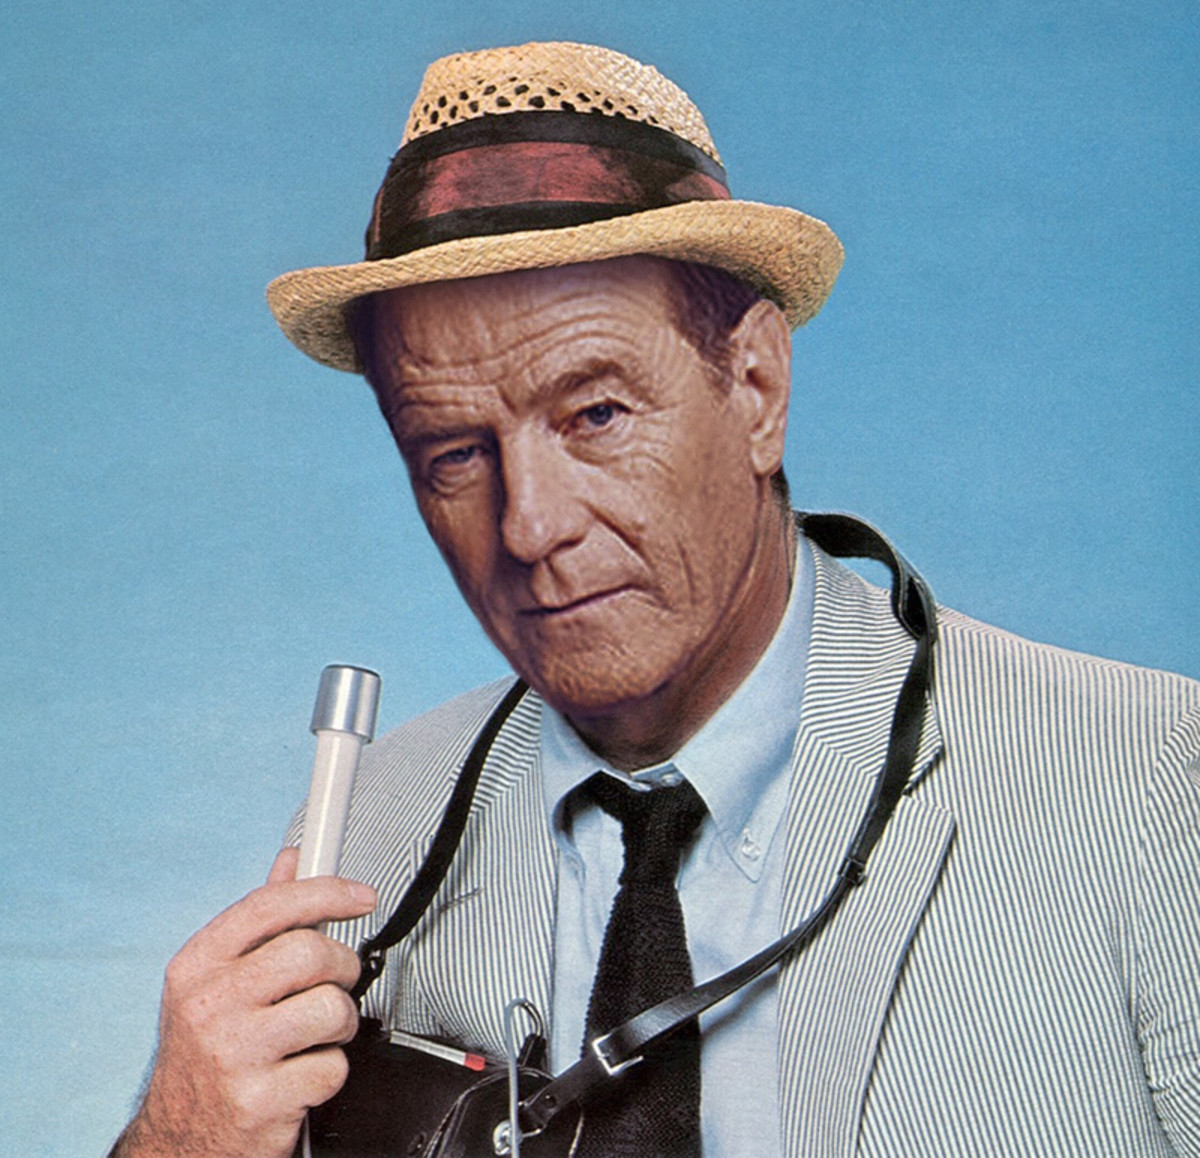 Brian Cranston as Kolchak (much thanks to Frank Dardzinski for Photoshopping this)